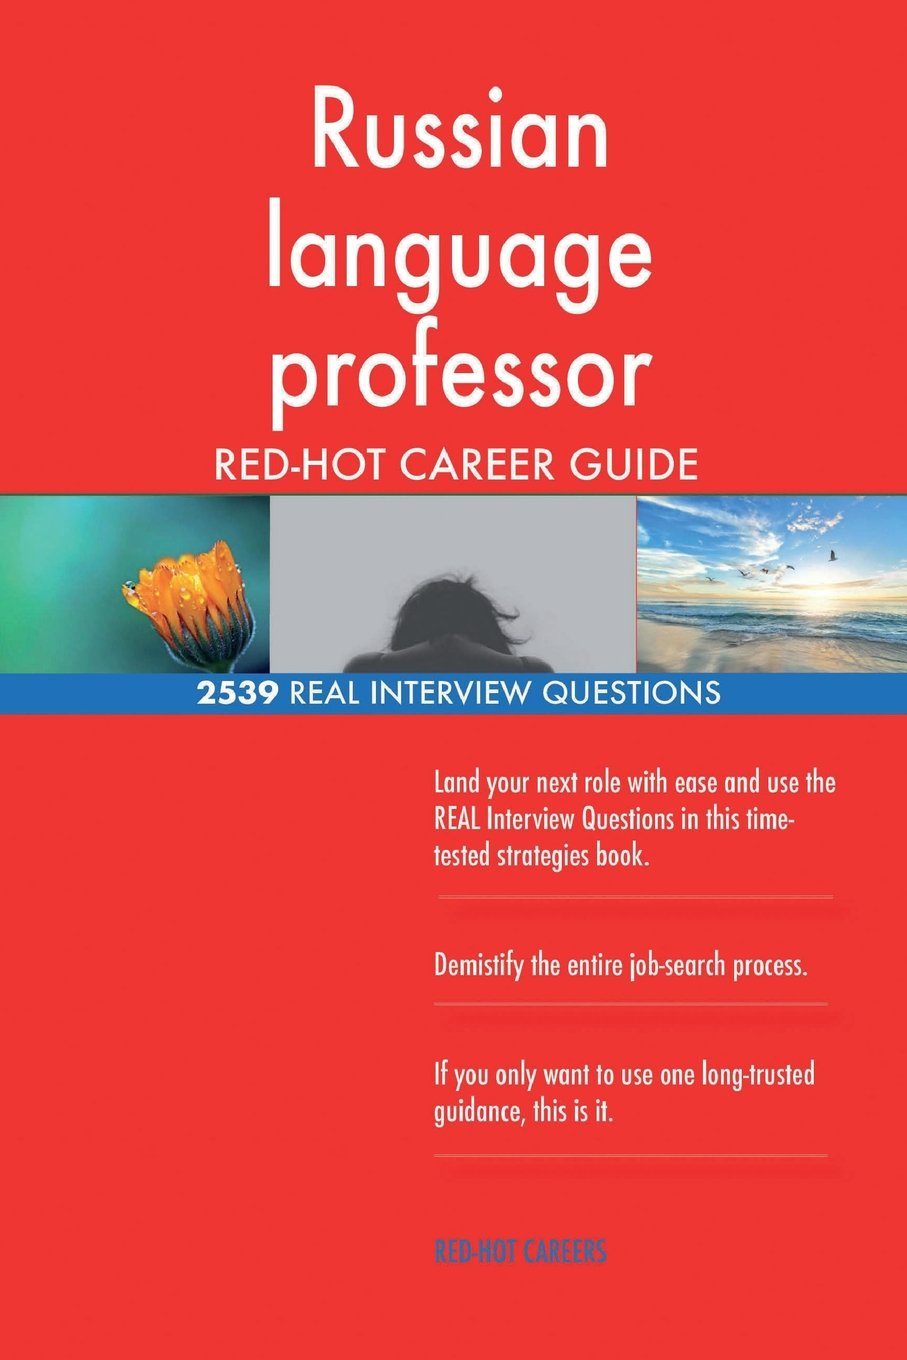 Russian language professor RED-HOT Career Guide; 2539 REAL Interview Questions by CreateSpace Independent Publishing Platform